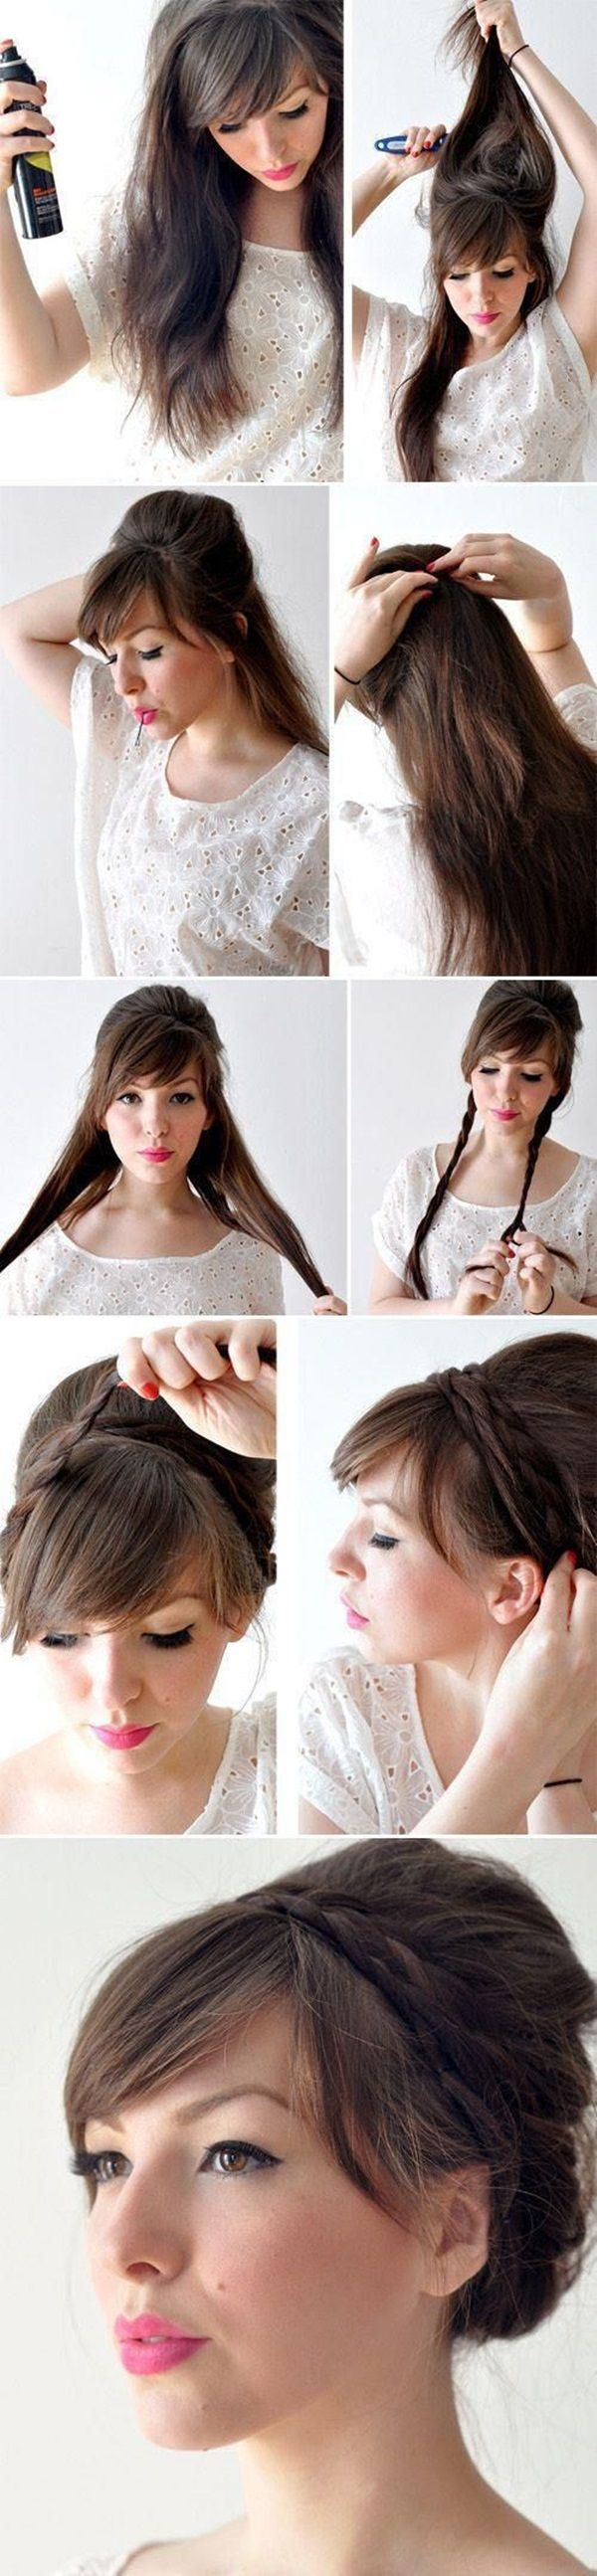 Quick Hairstyle Tutorials For Office Women (2)